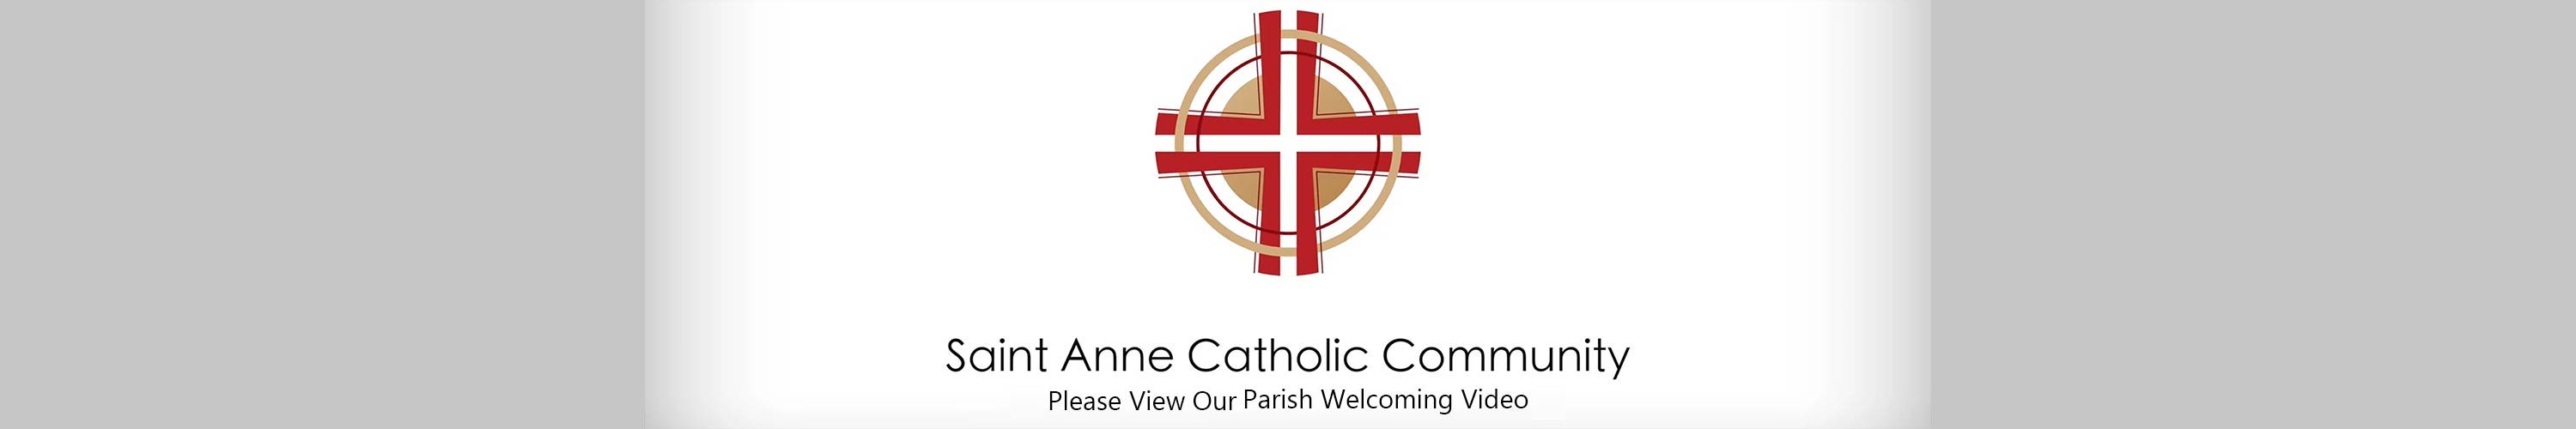 parish-welcoming-video-slider-1